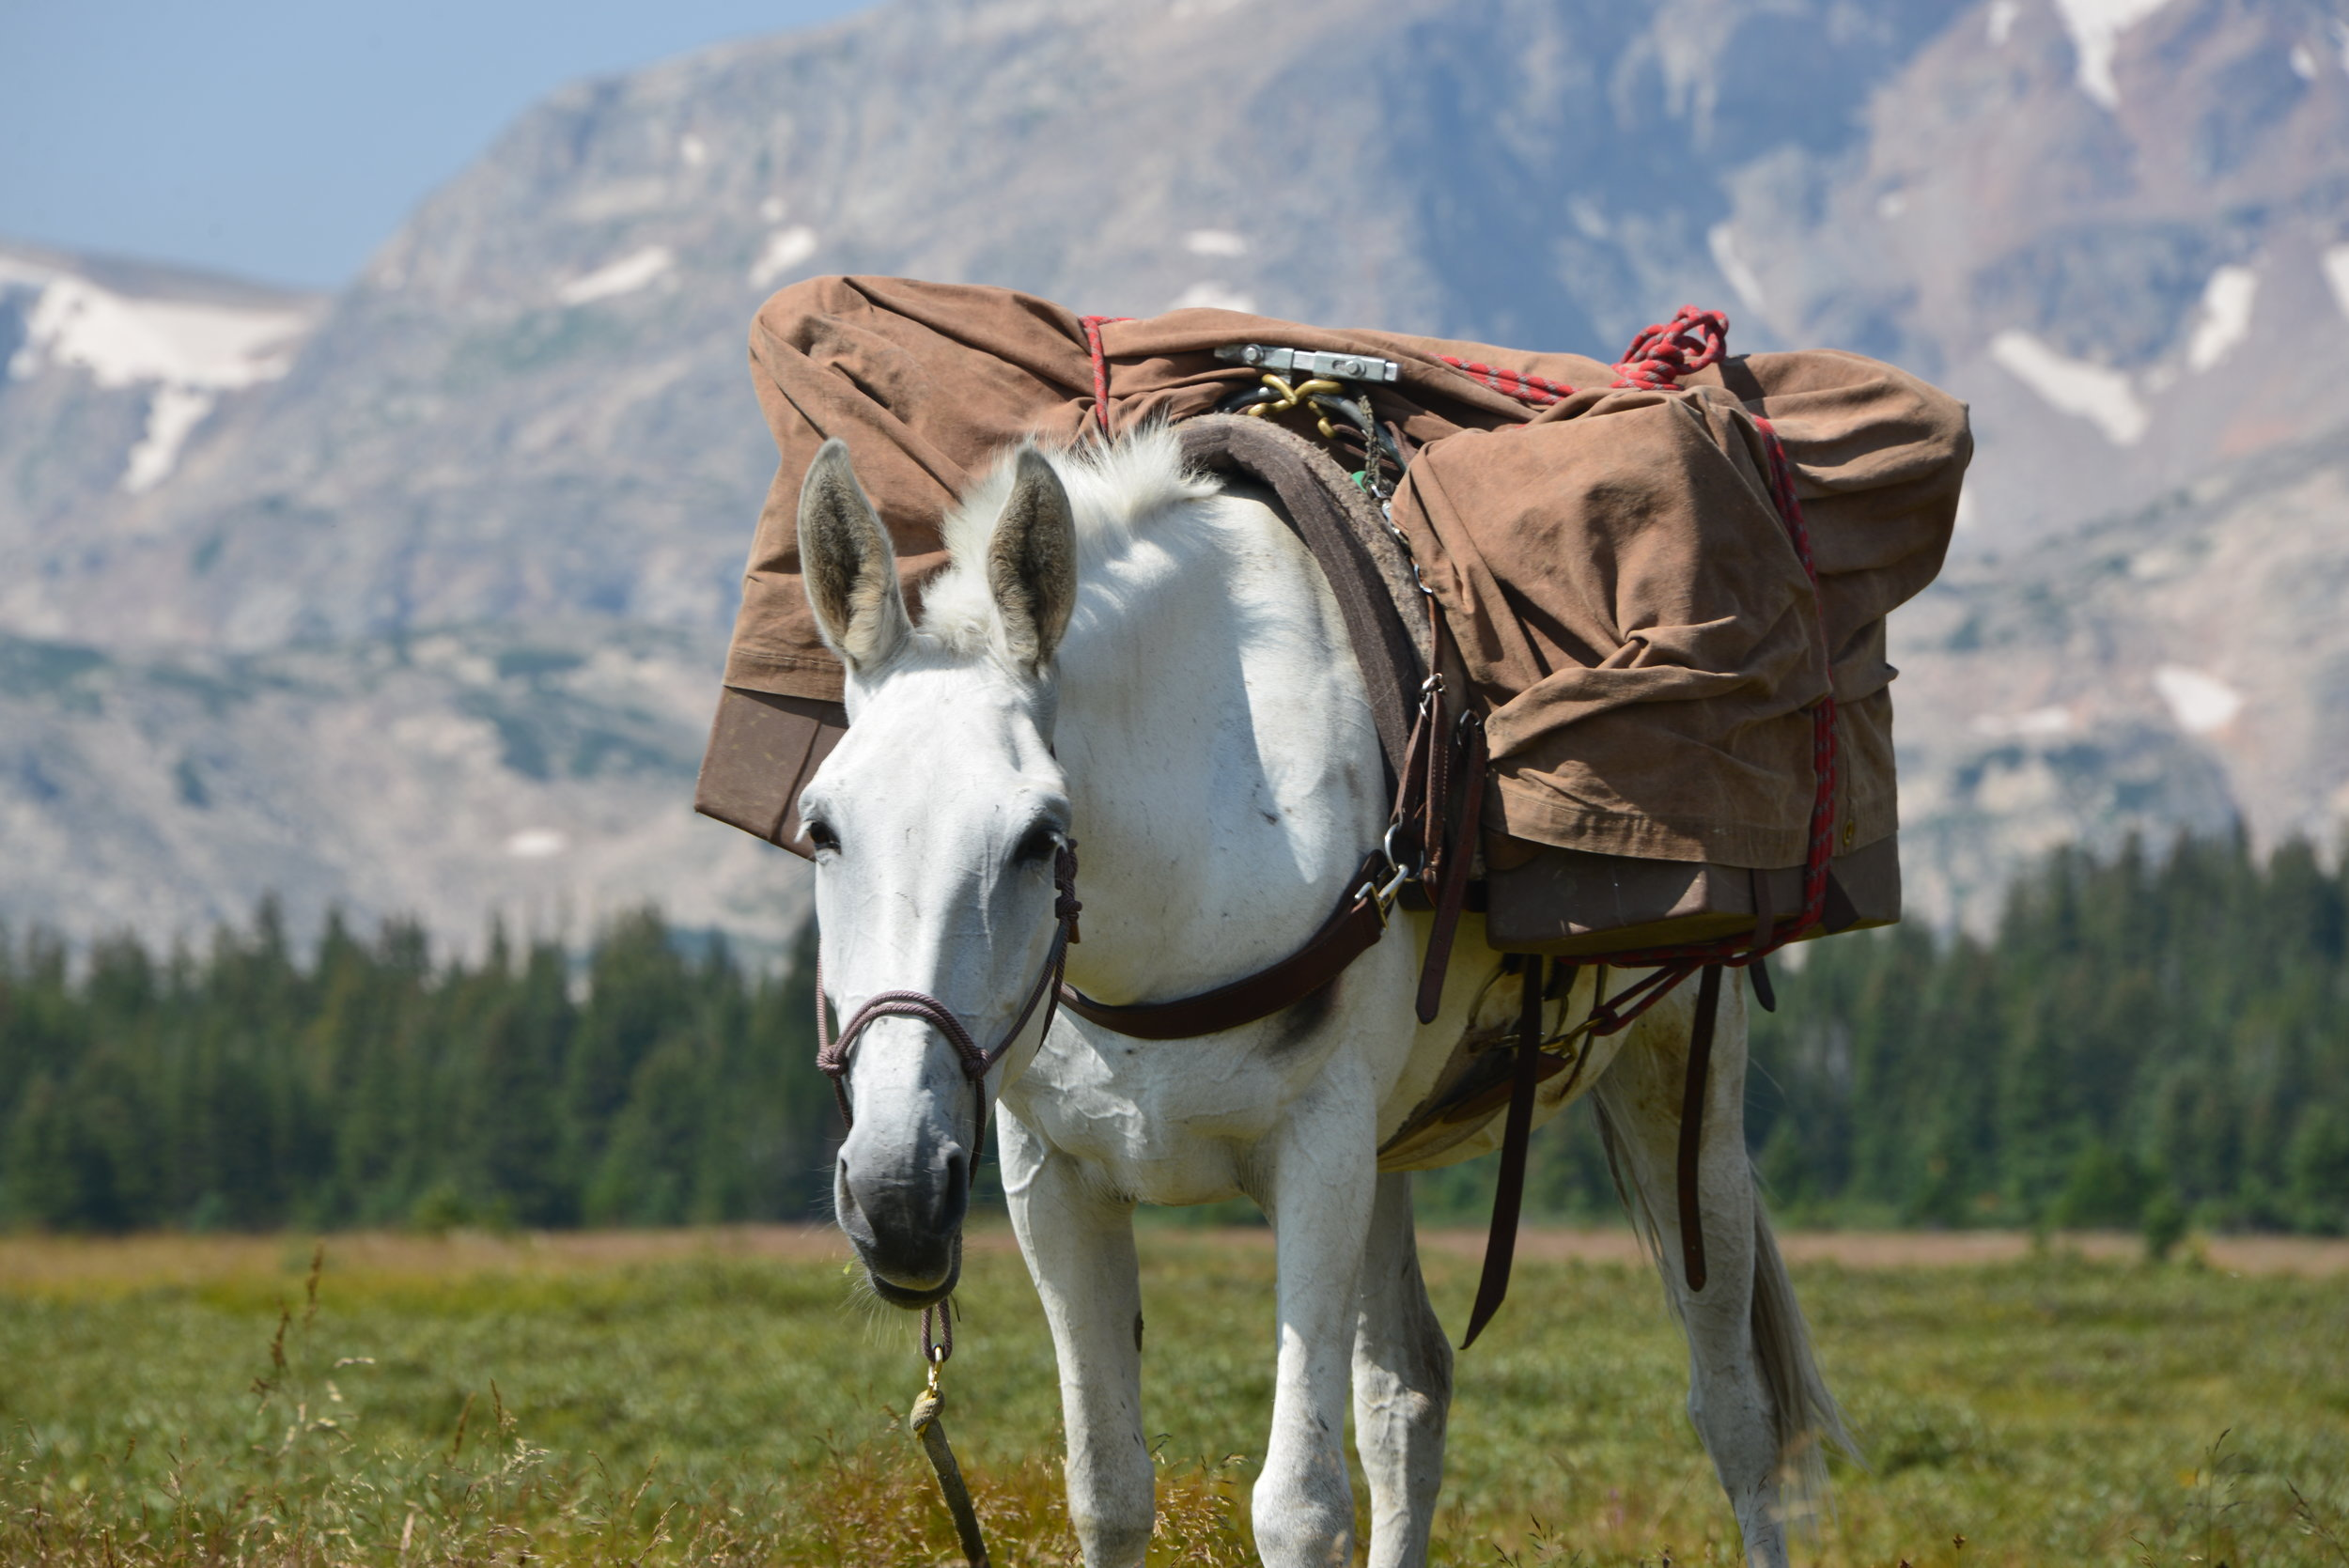 Advanced Horsepacking & Wilderness Skills - (Expedition Full)July 31-August 7 $2800We will travel to remote and rugged wilderness areas that offer solitude, sweeping vistas, and stunning beauty. Long days in the saddle will allow us to cover plenty of miles and travel through several different ecosystems, from wildflower-studded foothills to remote high-alpine meadows carved out by glaciers. Our route will take us to expansive pine forests, hanging alpine lakes, 100-foot waterfalls, and roaring rivers. During this trip, expect to hone advanced horsemanship and wilderness skills and develop a close relationship with your two- and four-legged companions as we travel together as a team. We will be setting up and breaking down camp almost daily and you will learn how to leave a light hoof and footprint while traveling through wilderness areas with horses. During this course, we will engage complex questions about our ecological past, present, and future. We hope you'll leave this trip inspired to continue to deeply love and care for wild places.Experience Level: This trip is designed for advanced riders with considerable horse experience interested in a challenging, remote, and rugged backcountry horsepacking expedition.